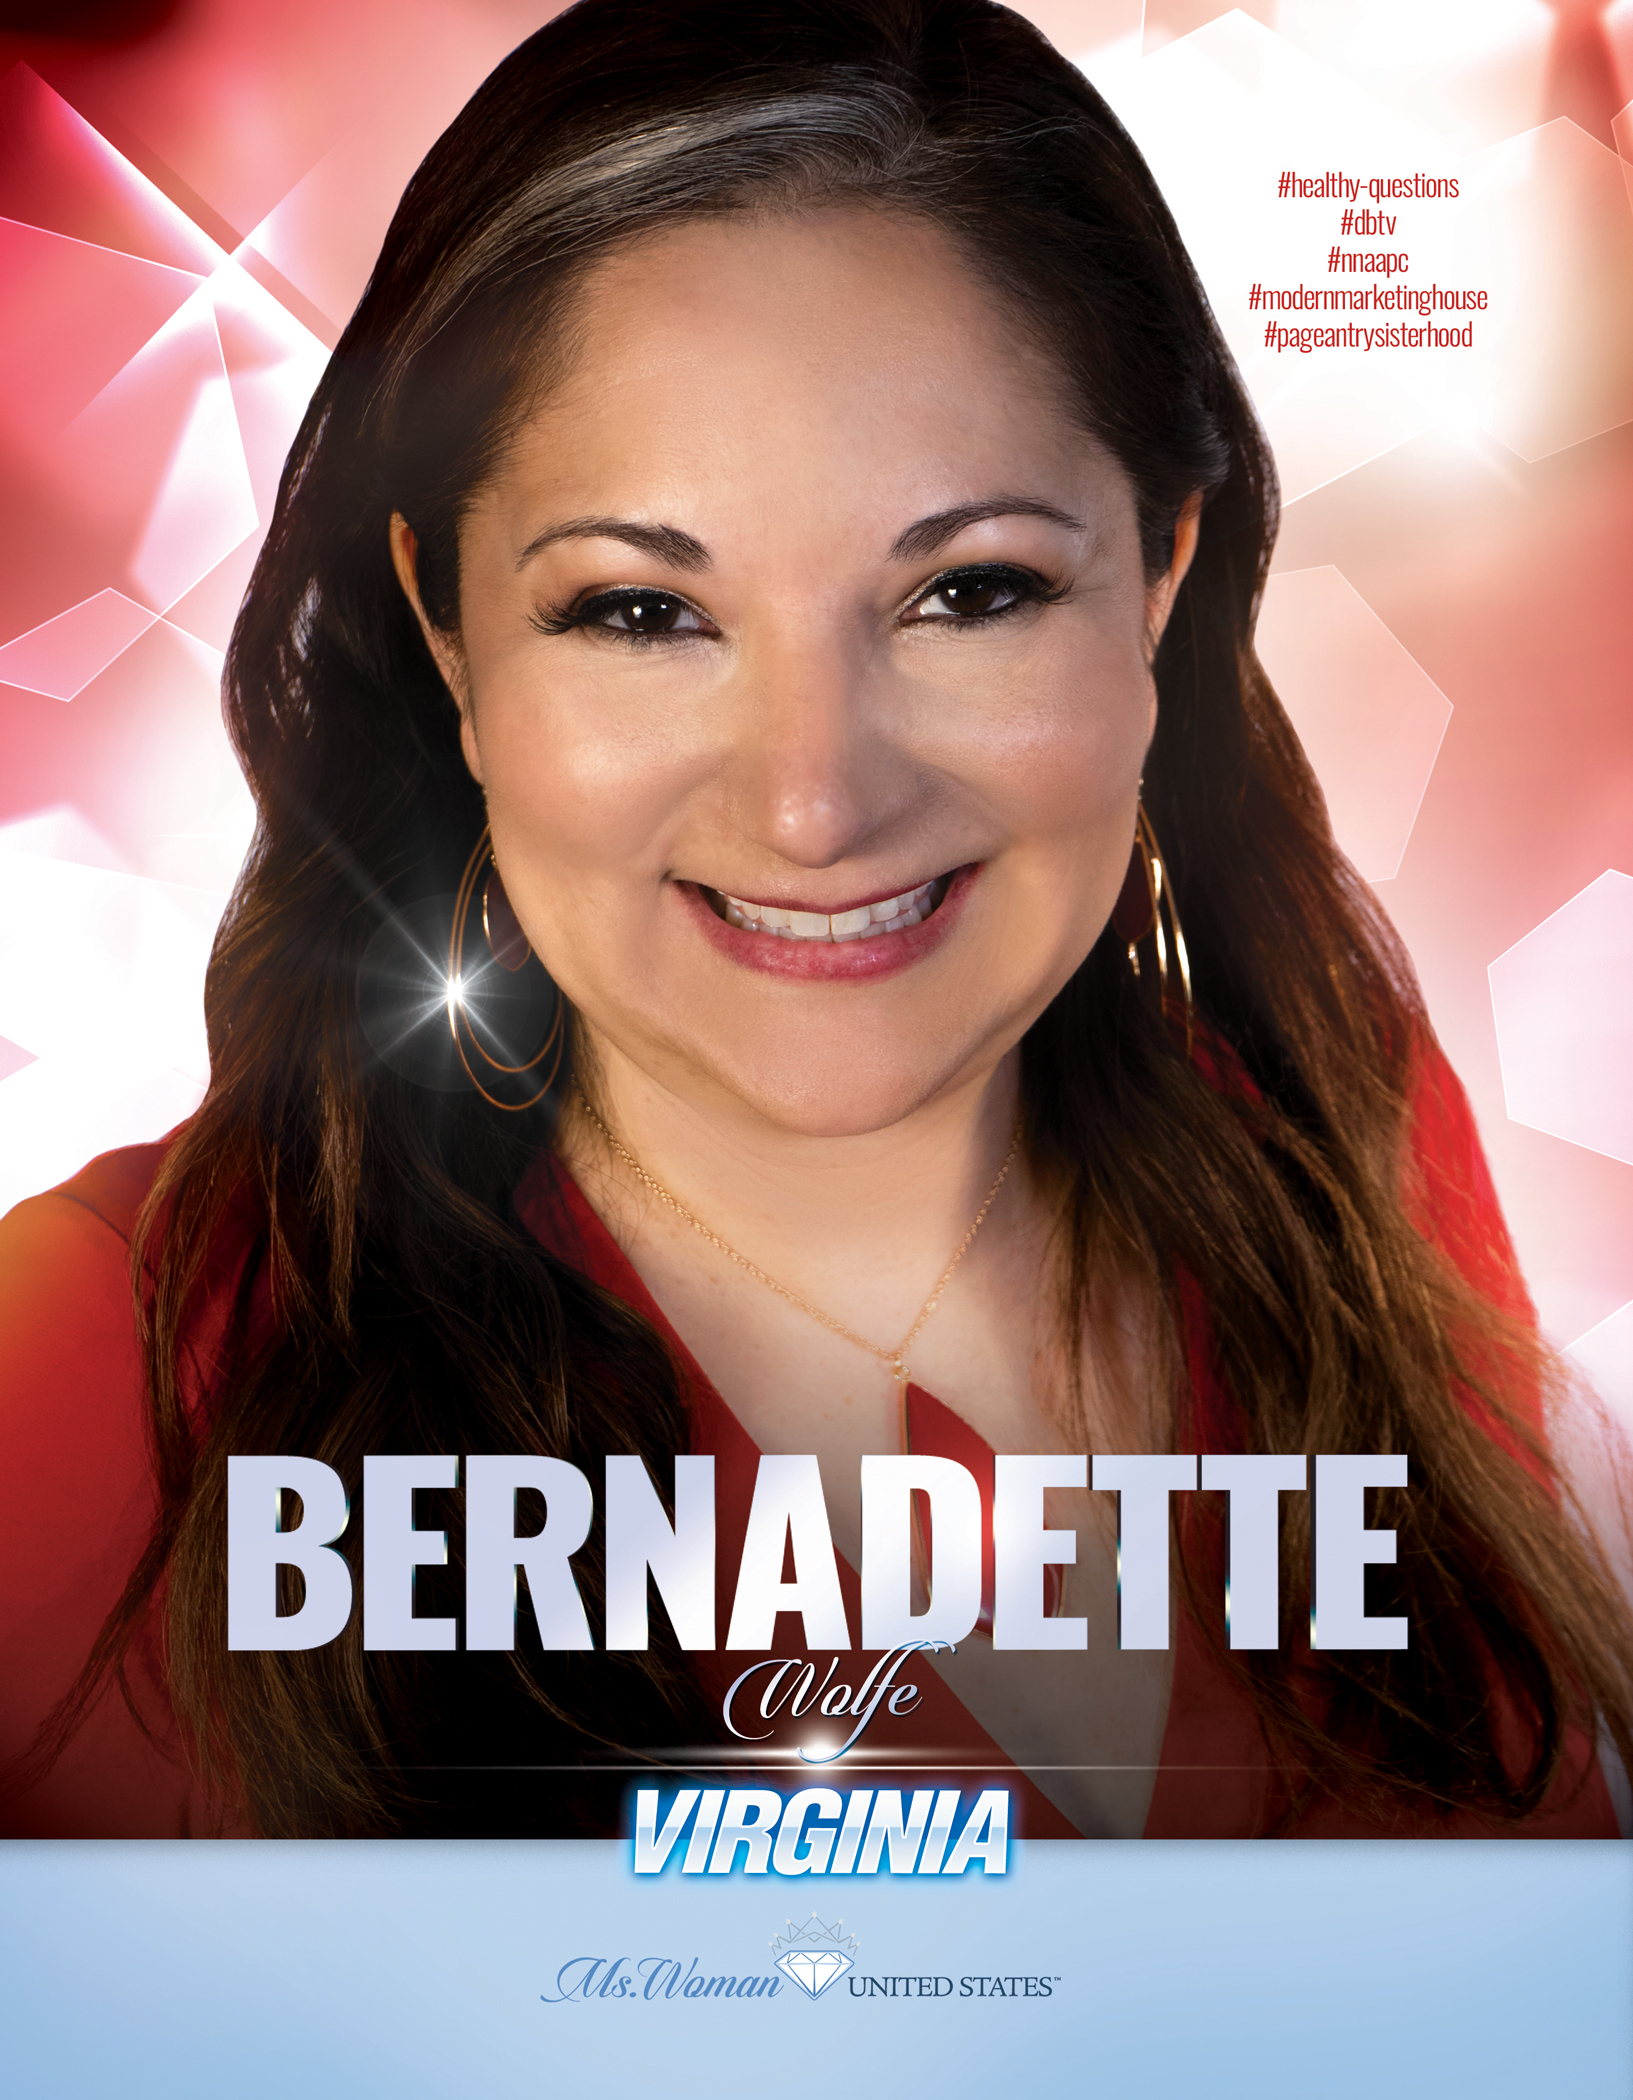 Bernadette Wolfe Ms. Woman Virginia United States - 2019